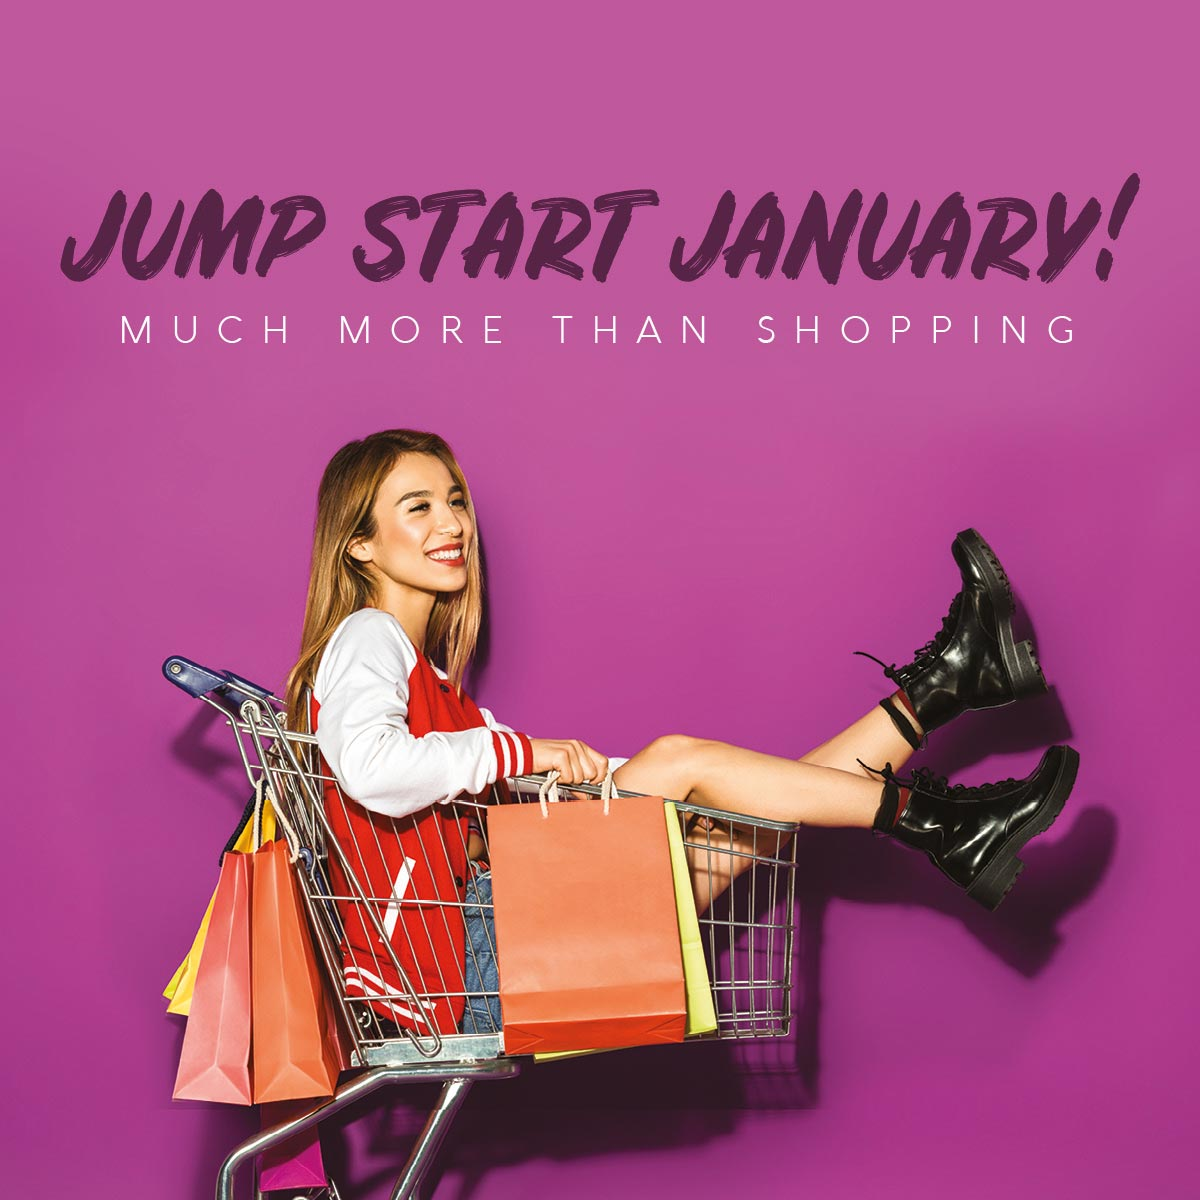 Jumpstart January Kids Activities